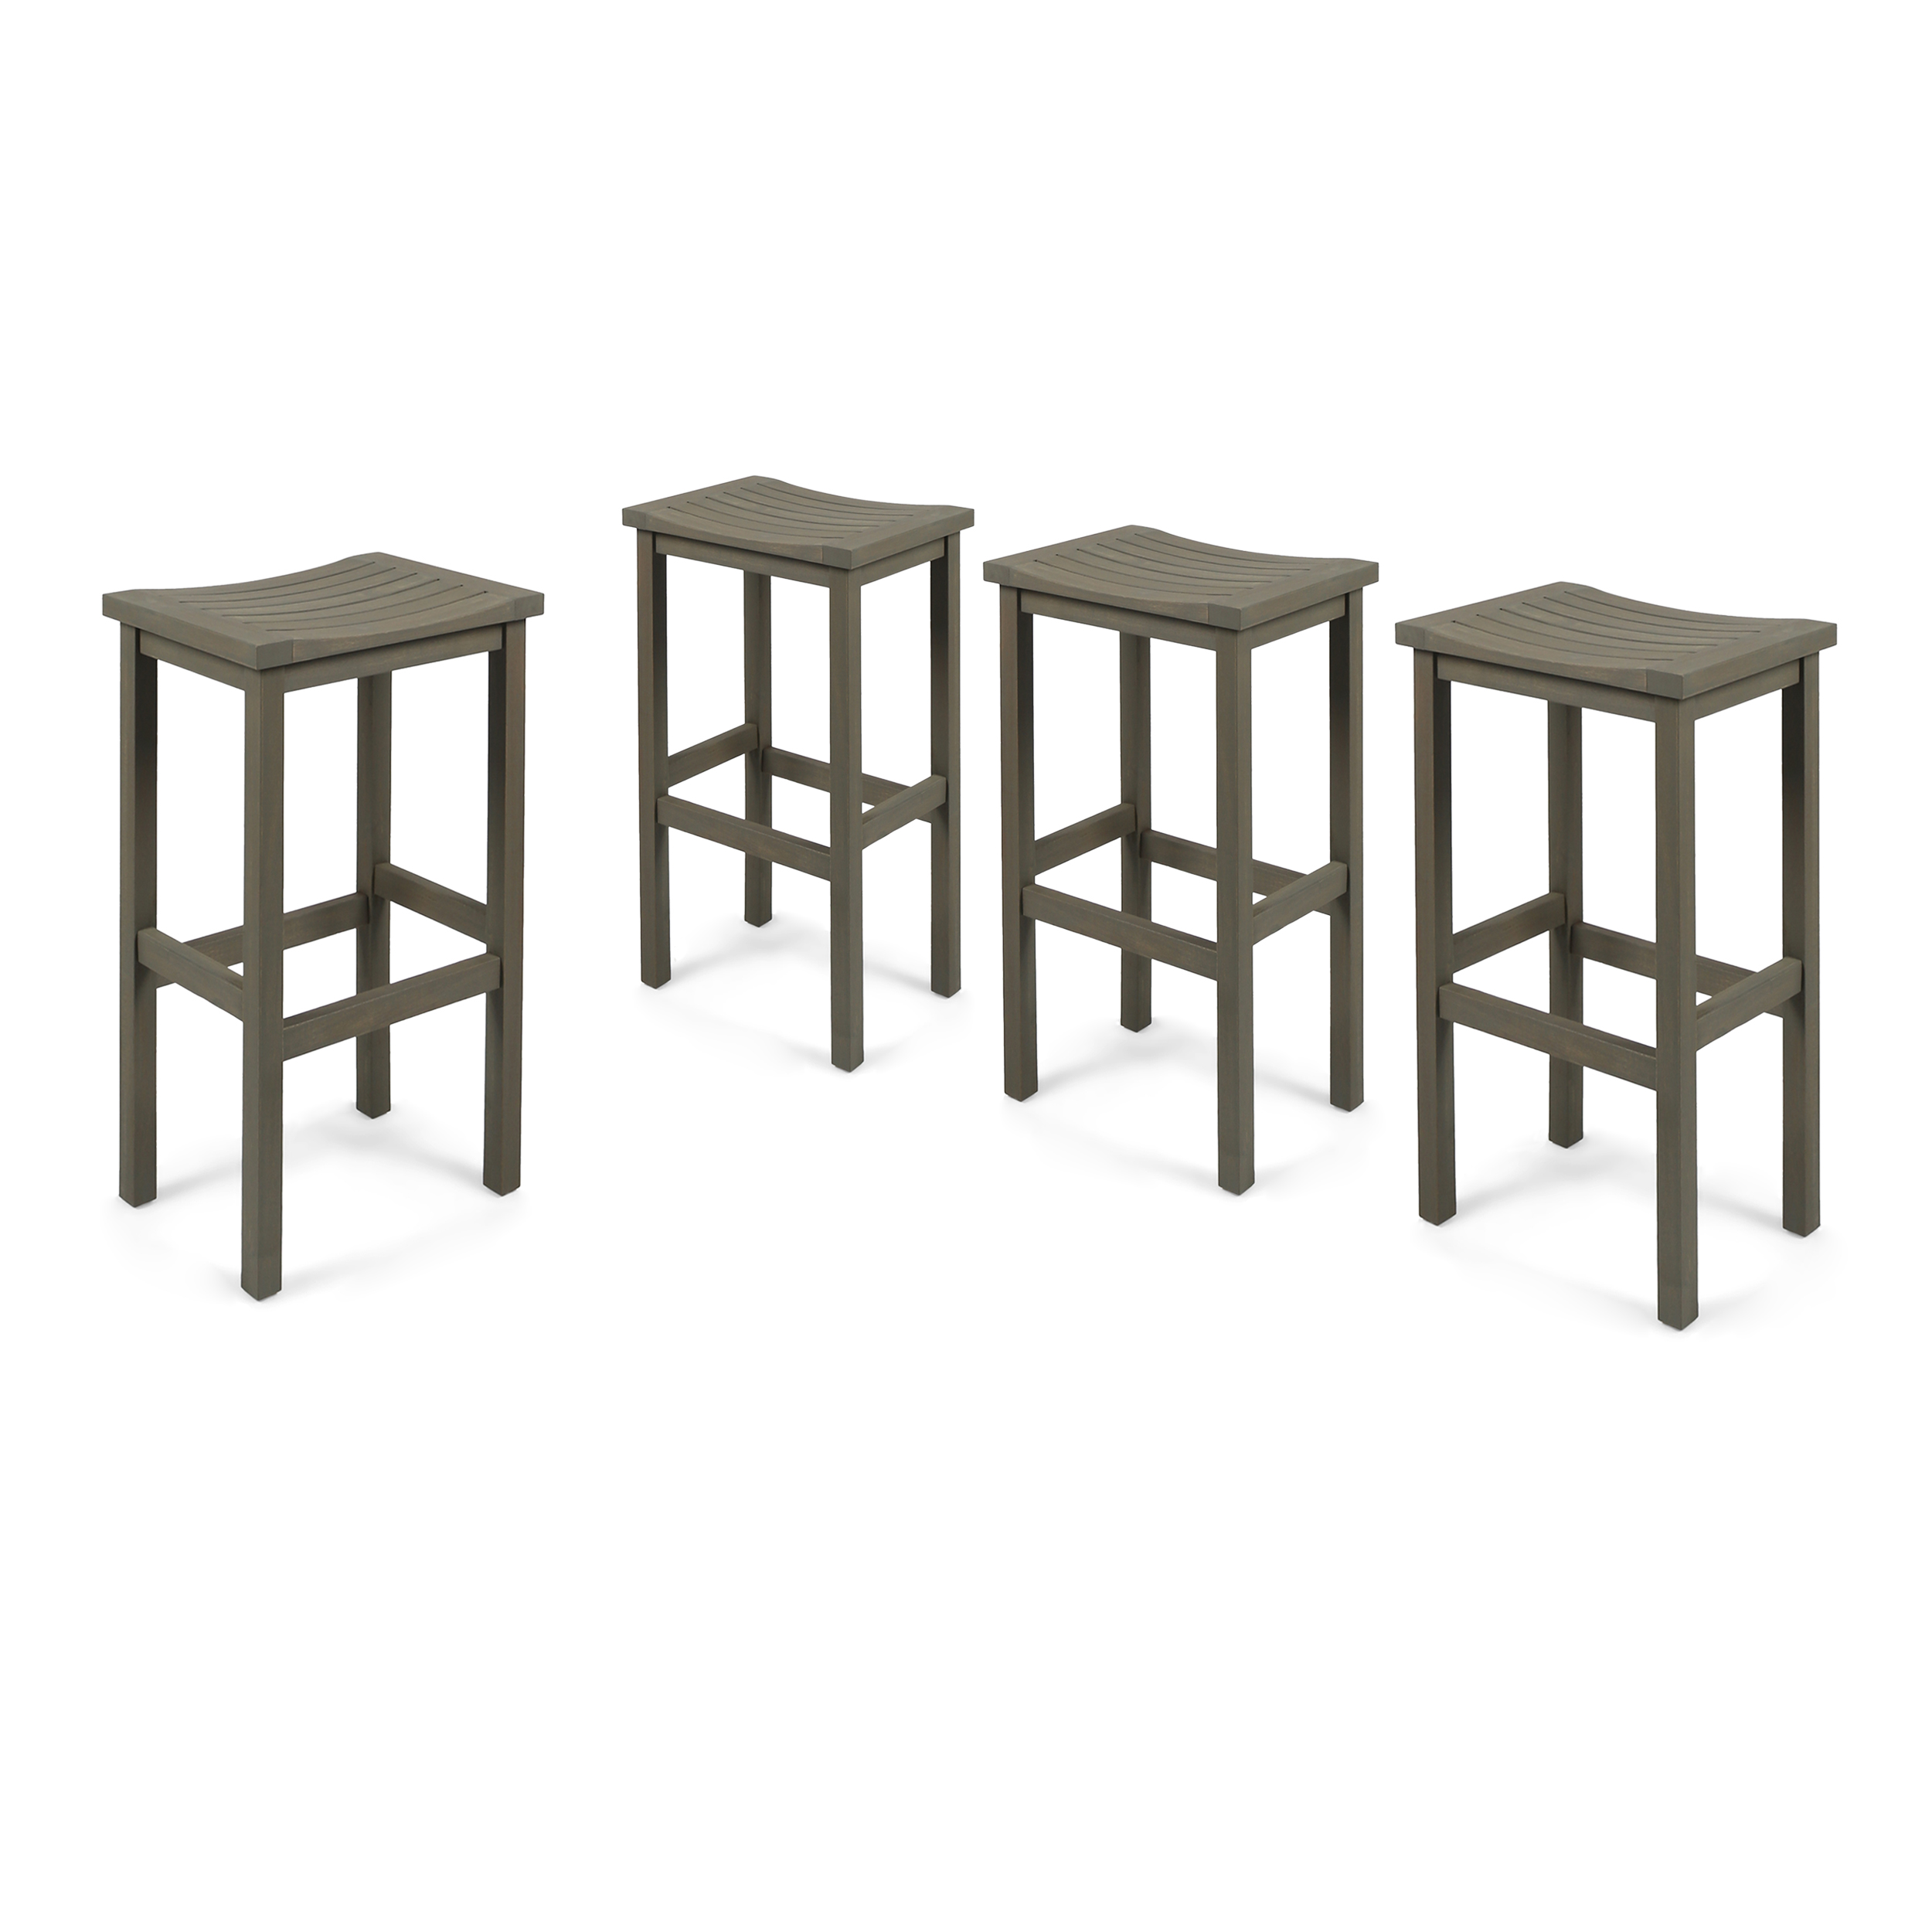 Cassie Outdoor 30 Inch Acacia Wood Barstools, Set of 4, Grey Finish